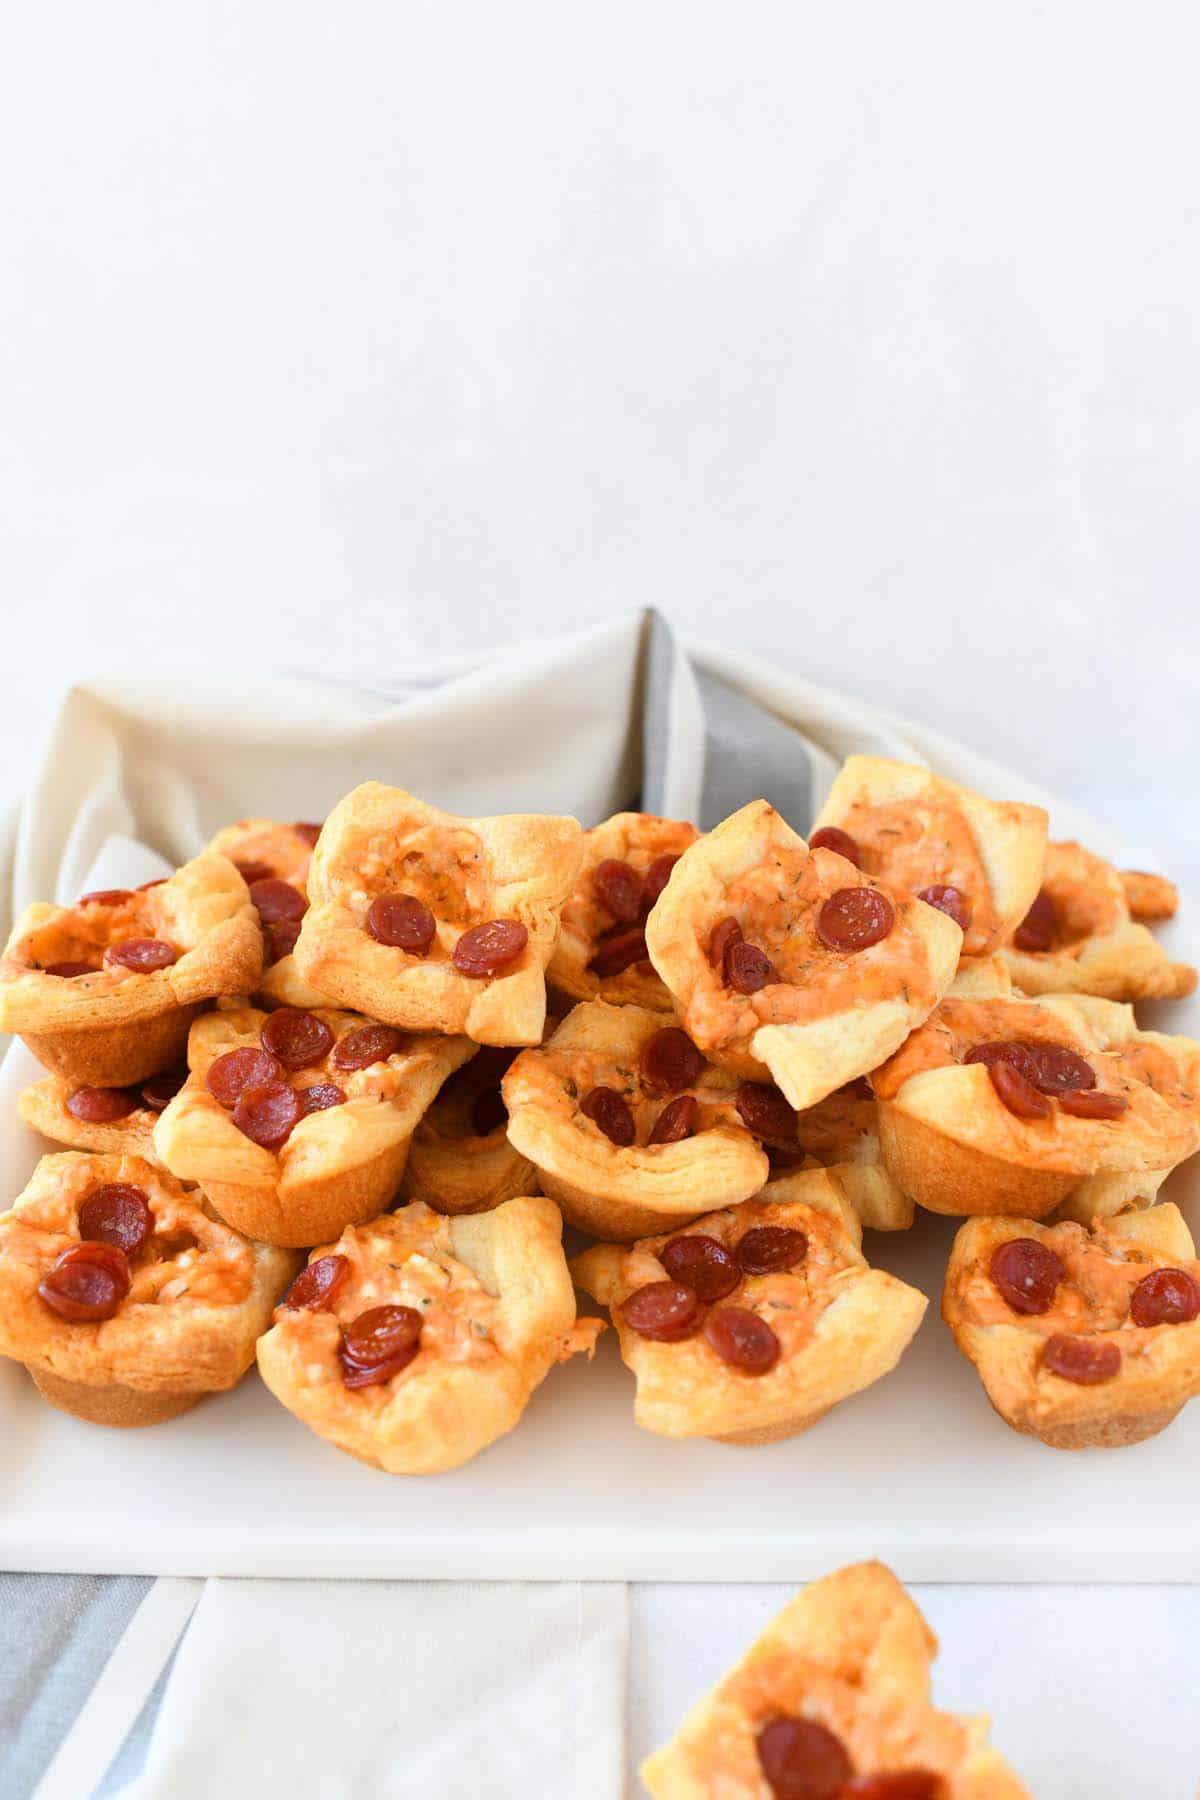 Pepperoni Pizza bites on a white tray with a tan napkin in the shot.